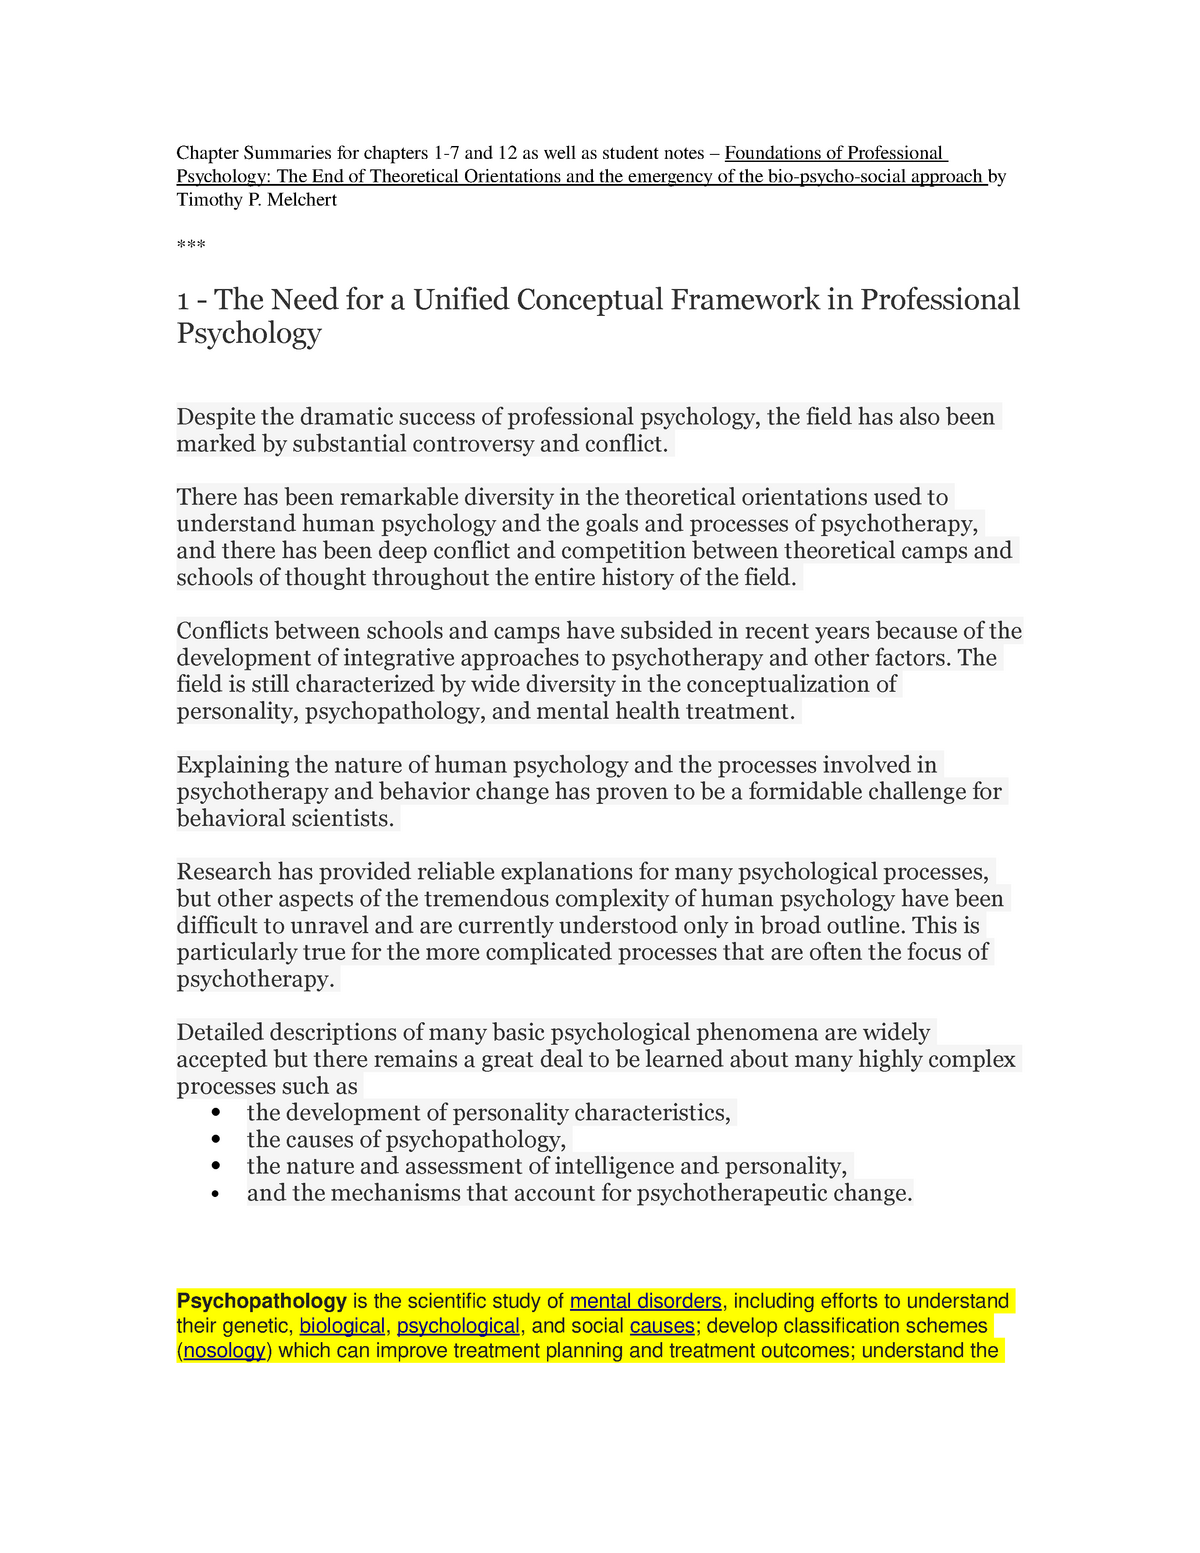 Chapter Summaries and student notes – Foundations of Professional